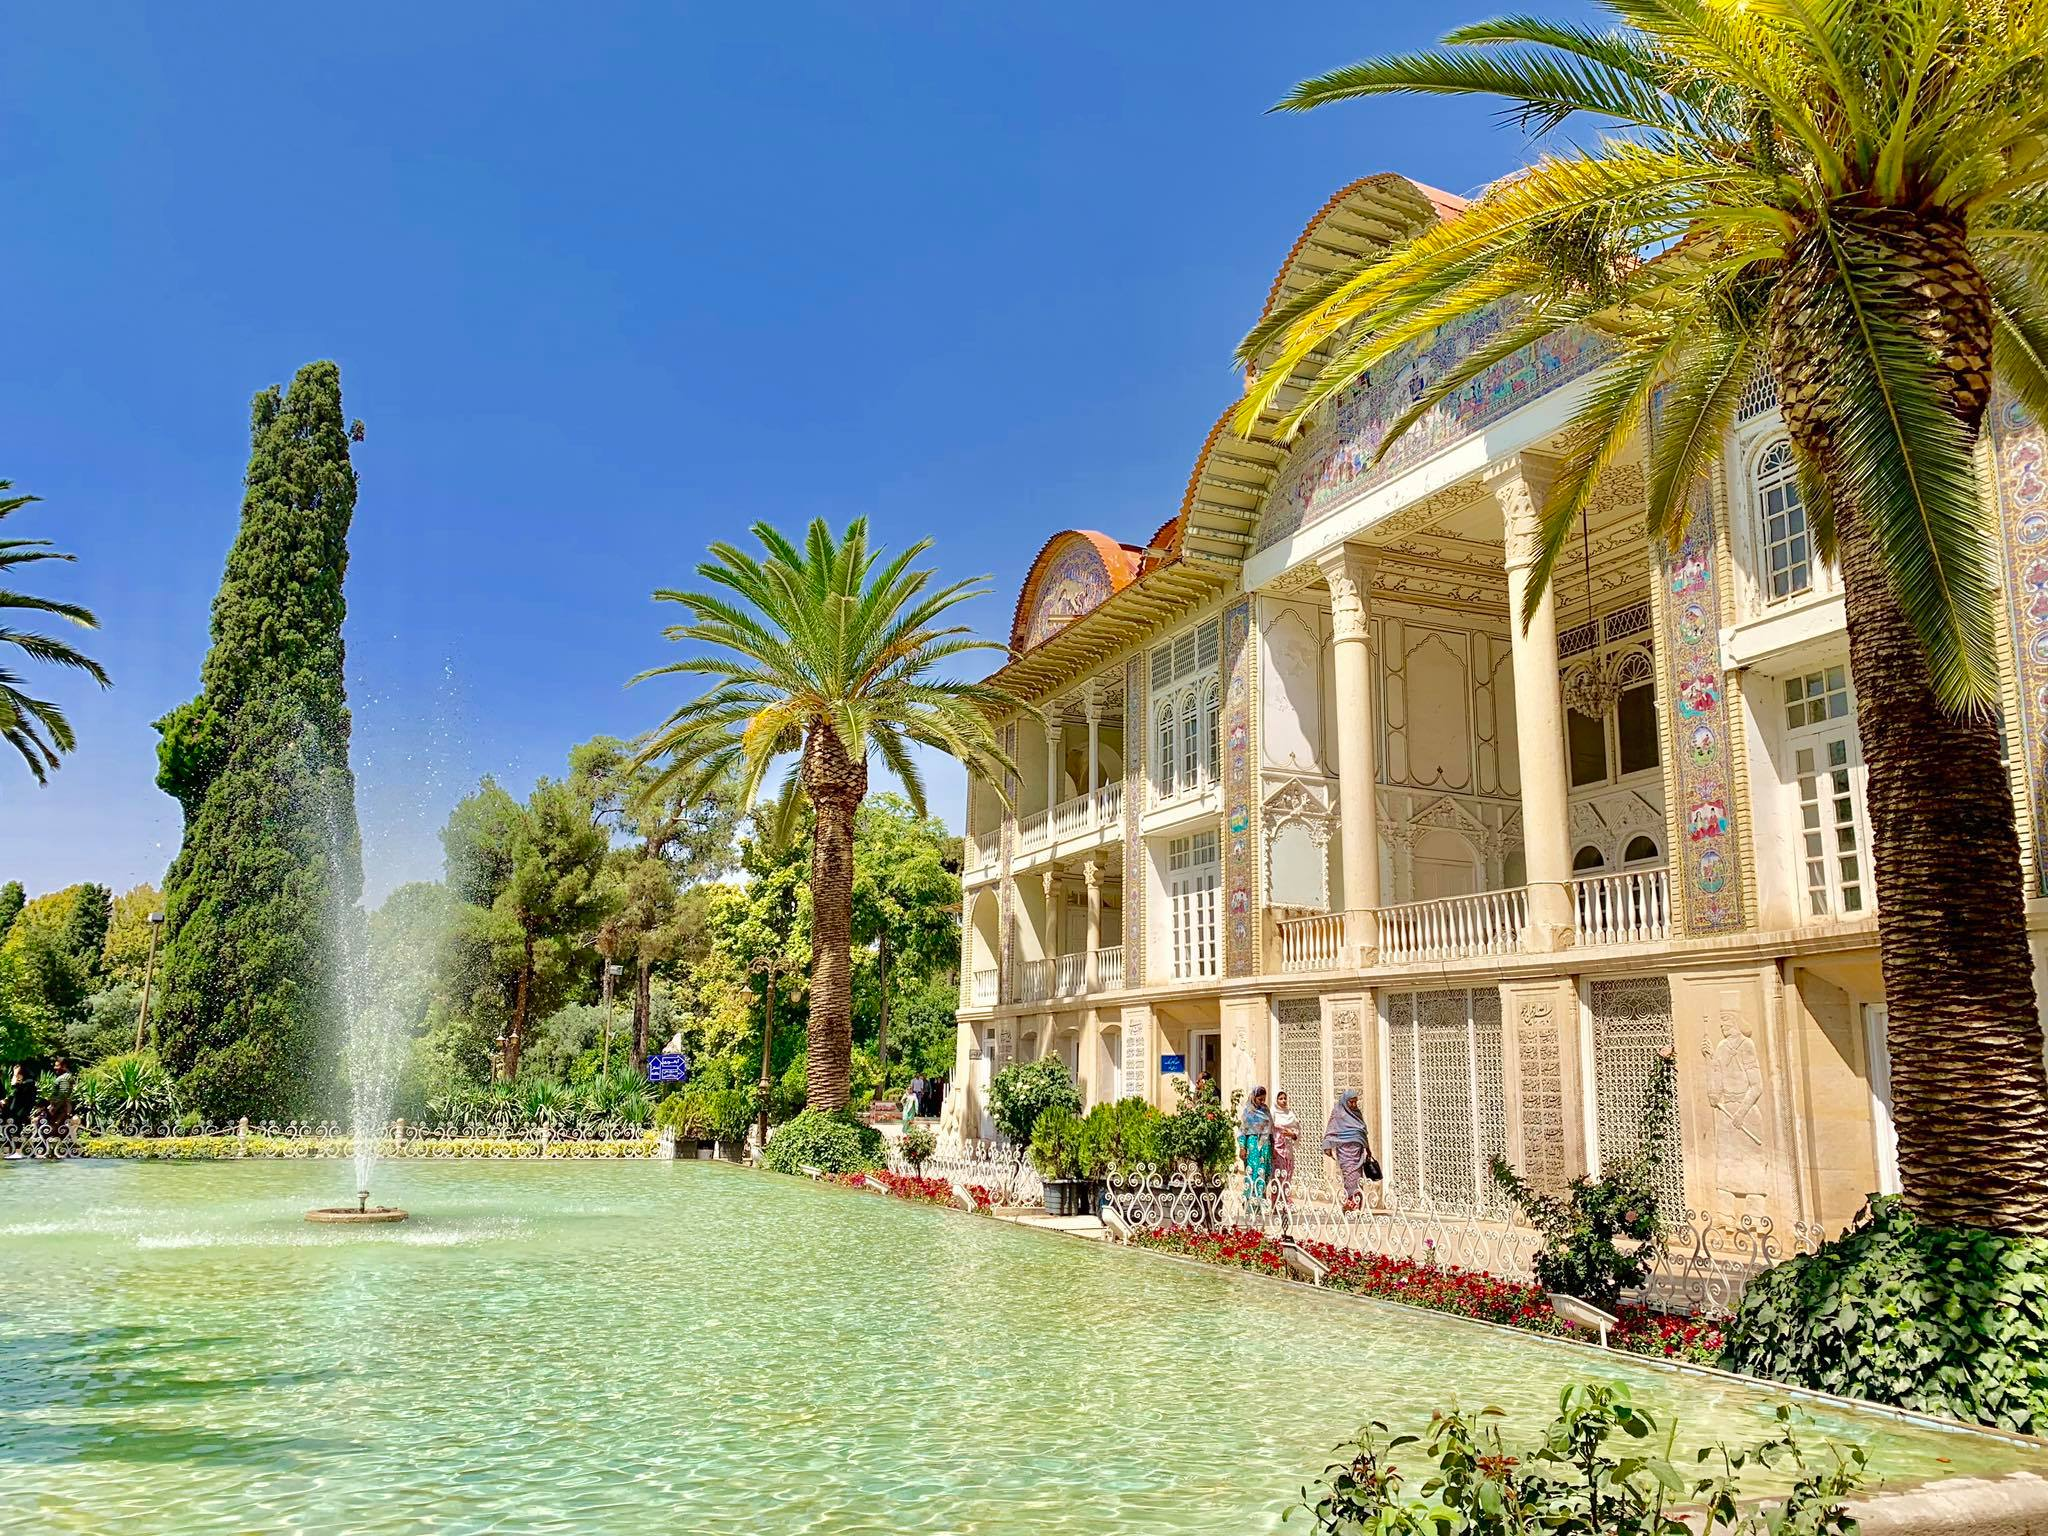 Kach Solo Travels in 2019 Full day tour of Shiraz9.jpg